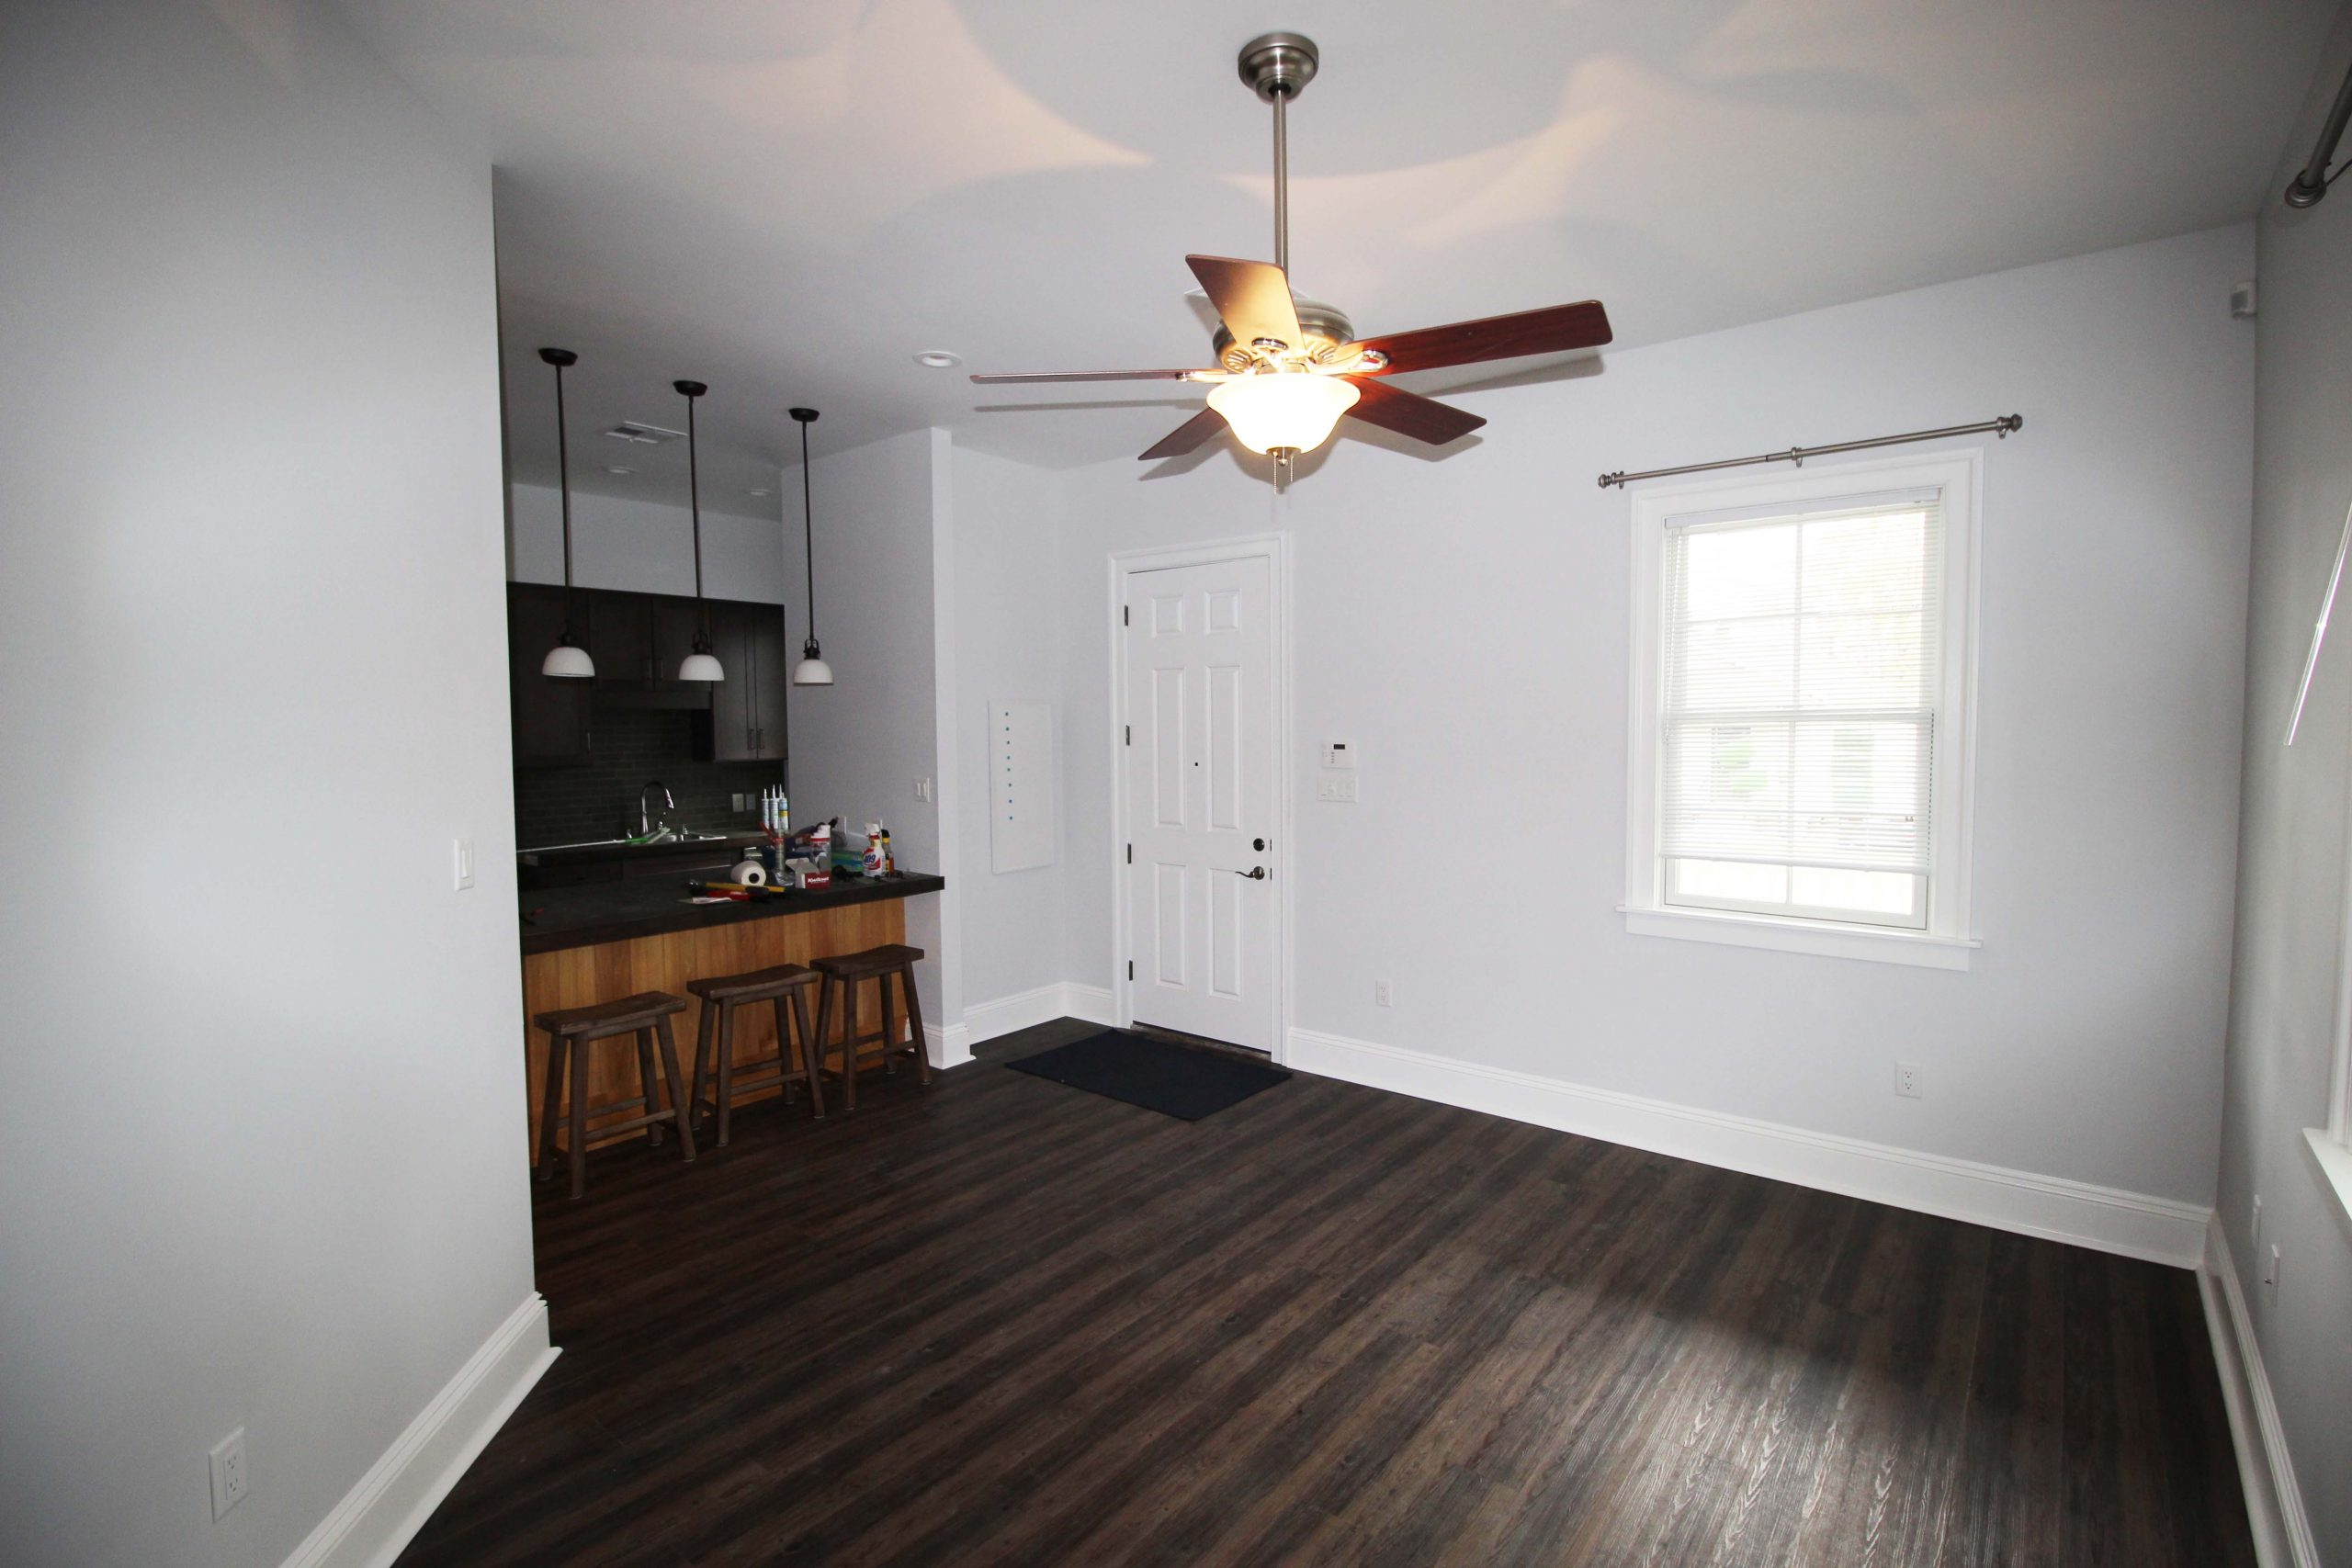 Property Manager In New Orleans